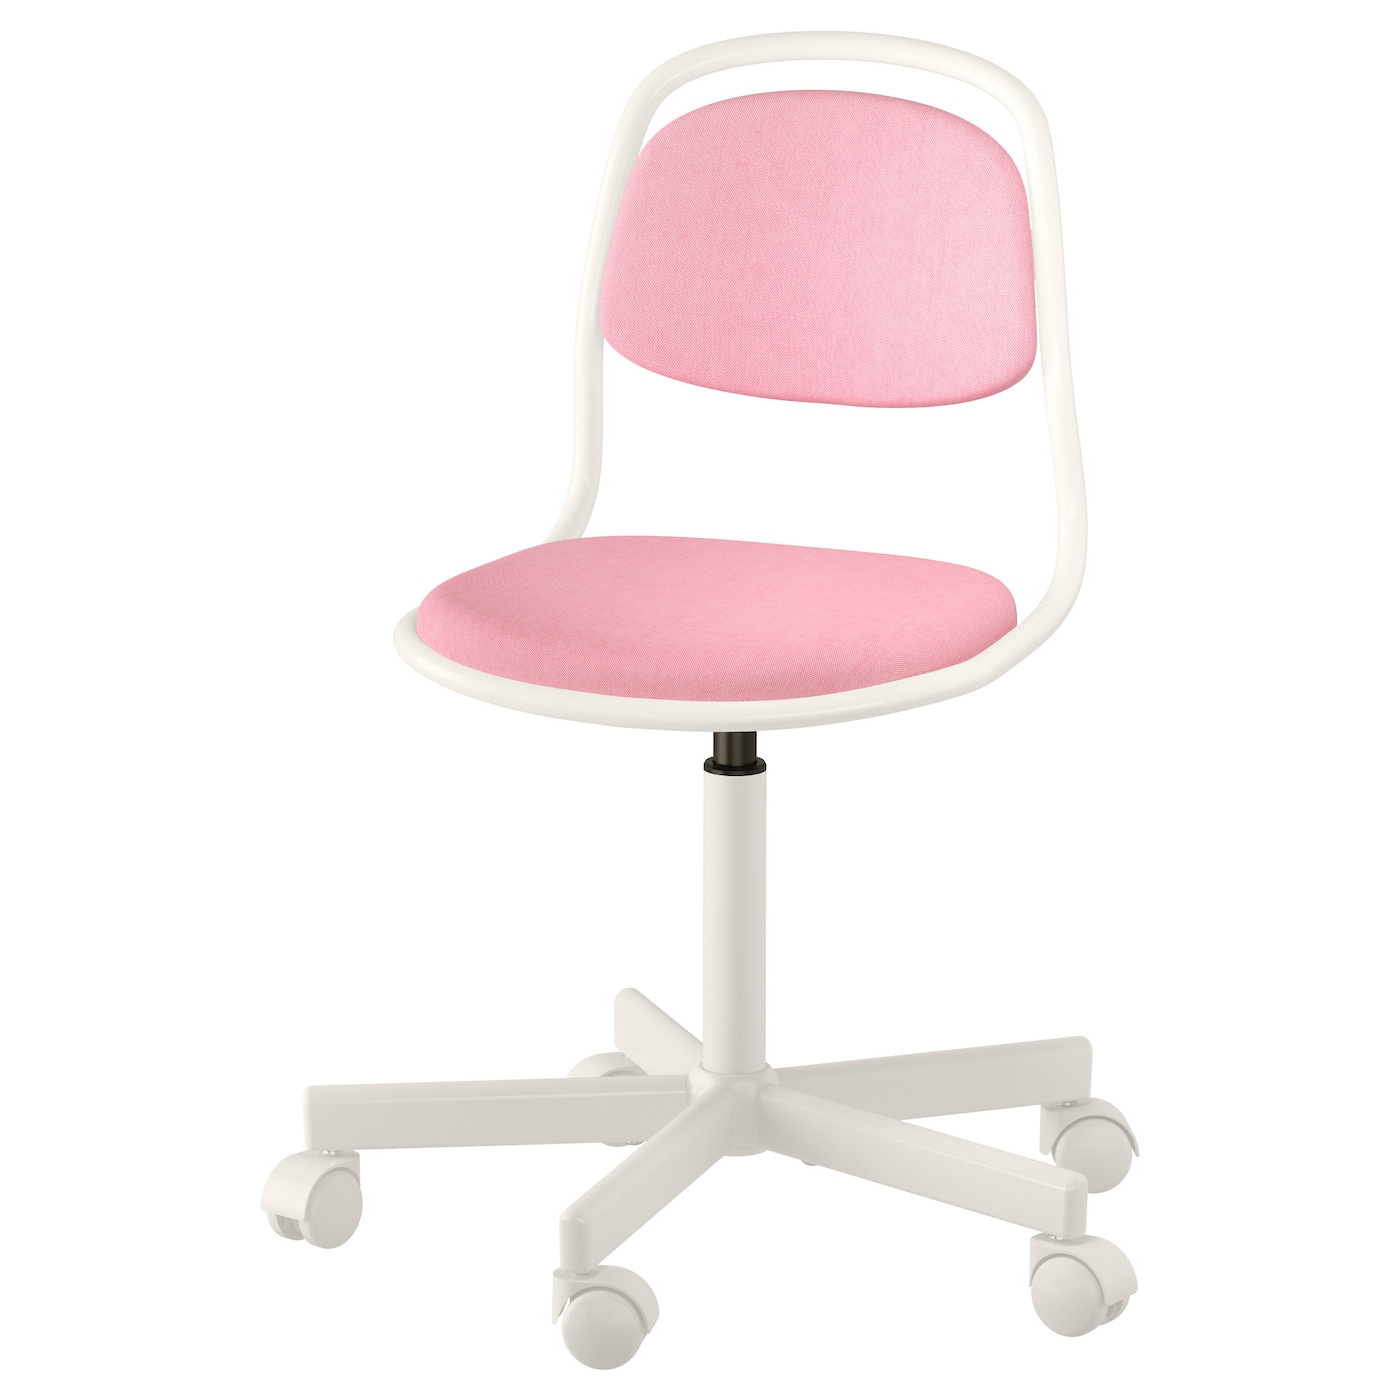 Desk Chairs For Children ÖrfjÄll children's desk chair white/vissle pink - ikea